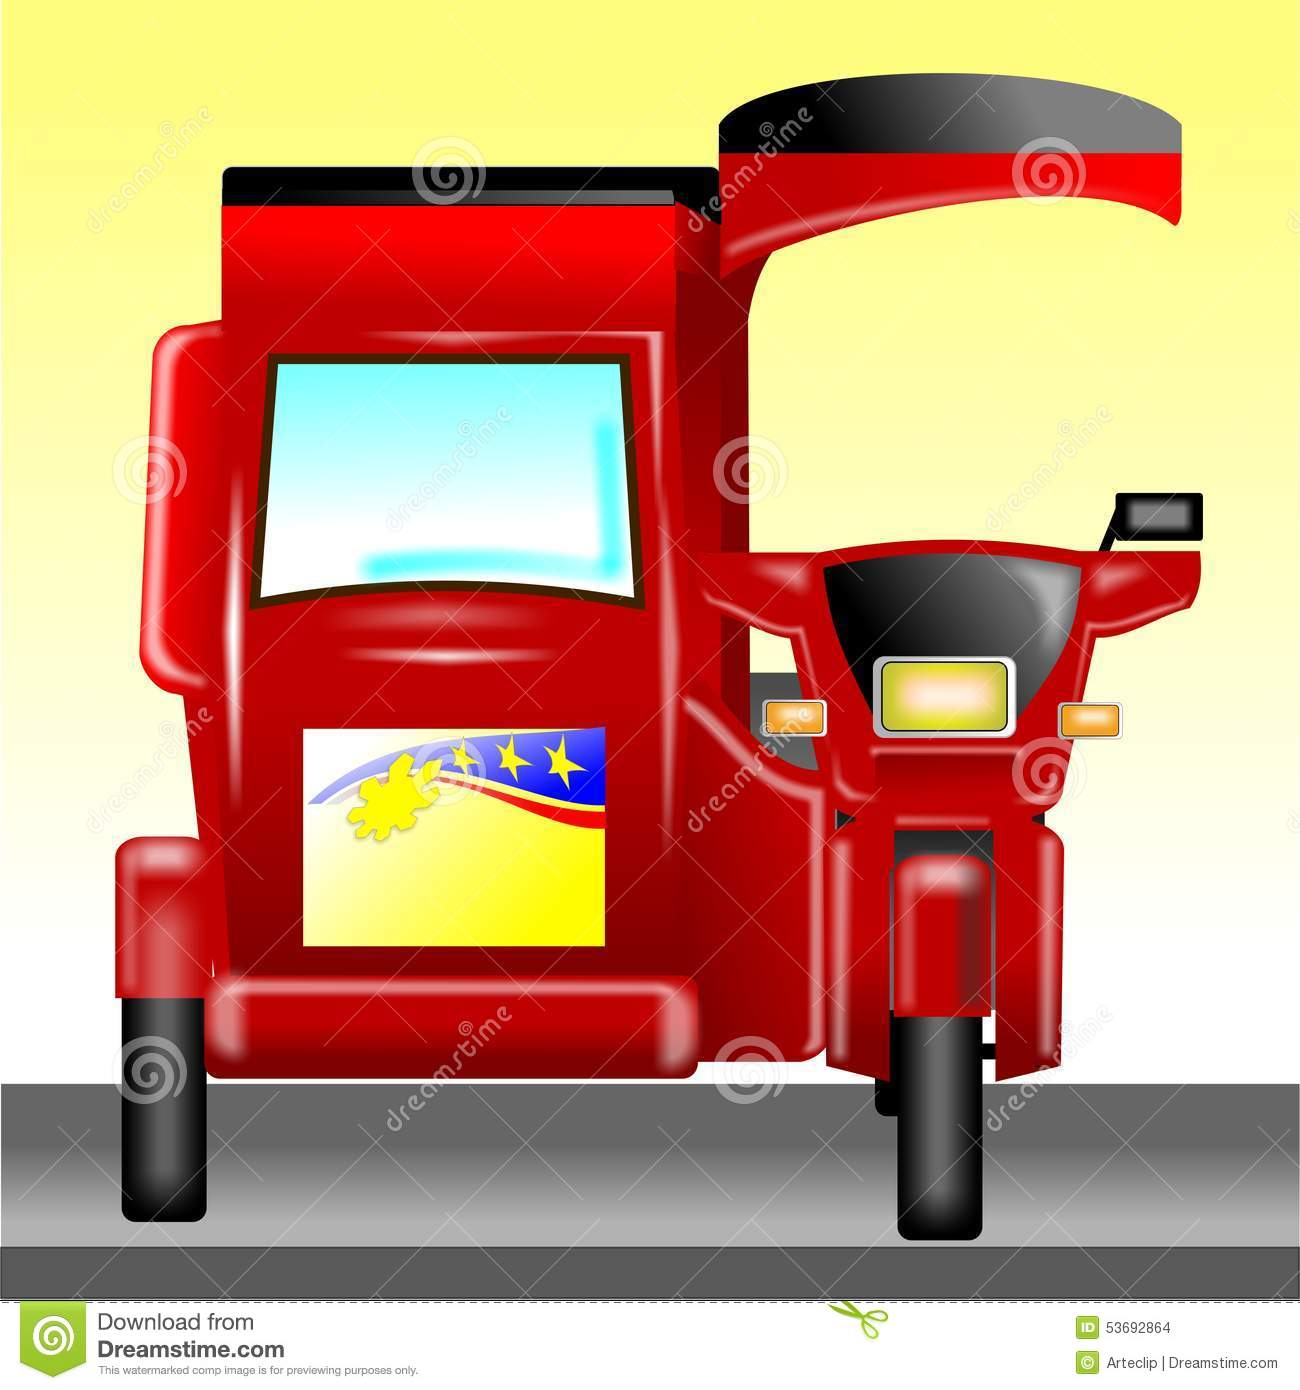 Motorized Tricycle Stock Illustrations 76 Motorized Tricycle Stock Illustrations Vectors Clipart Dreamstime